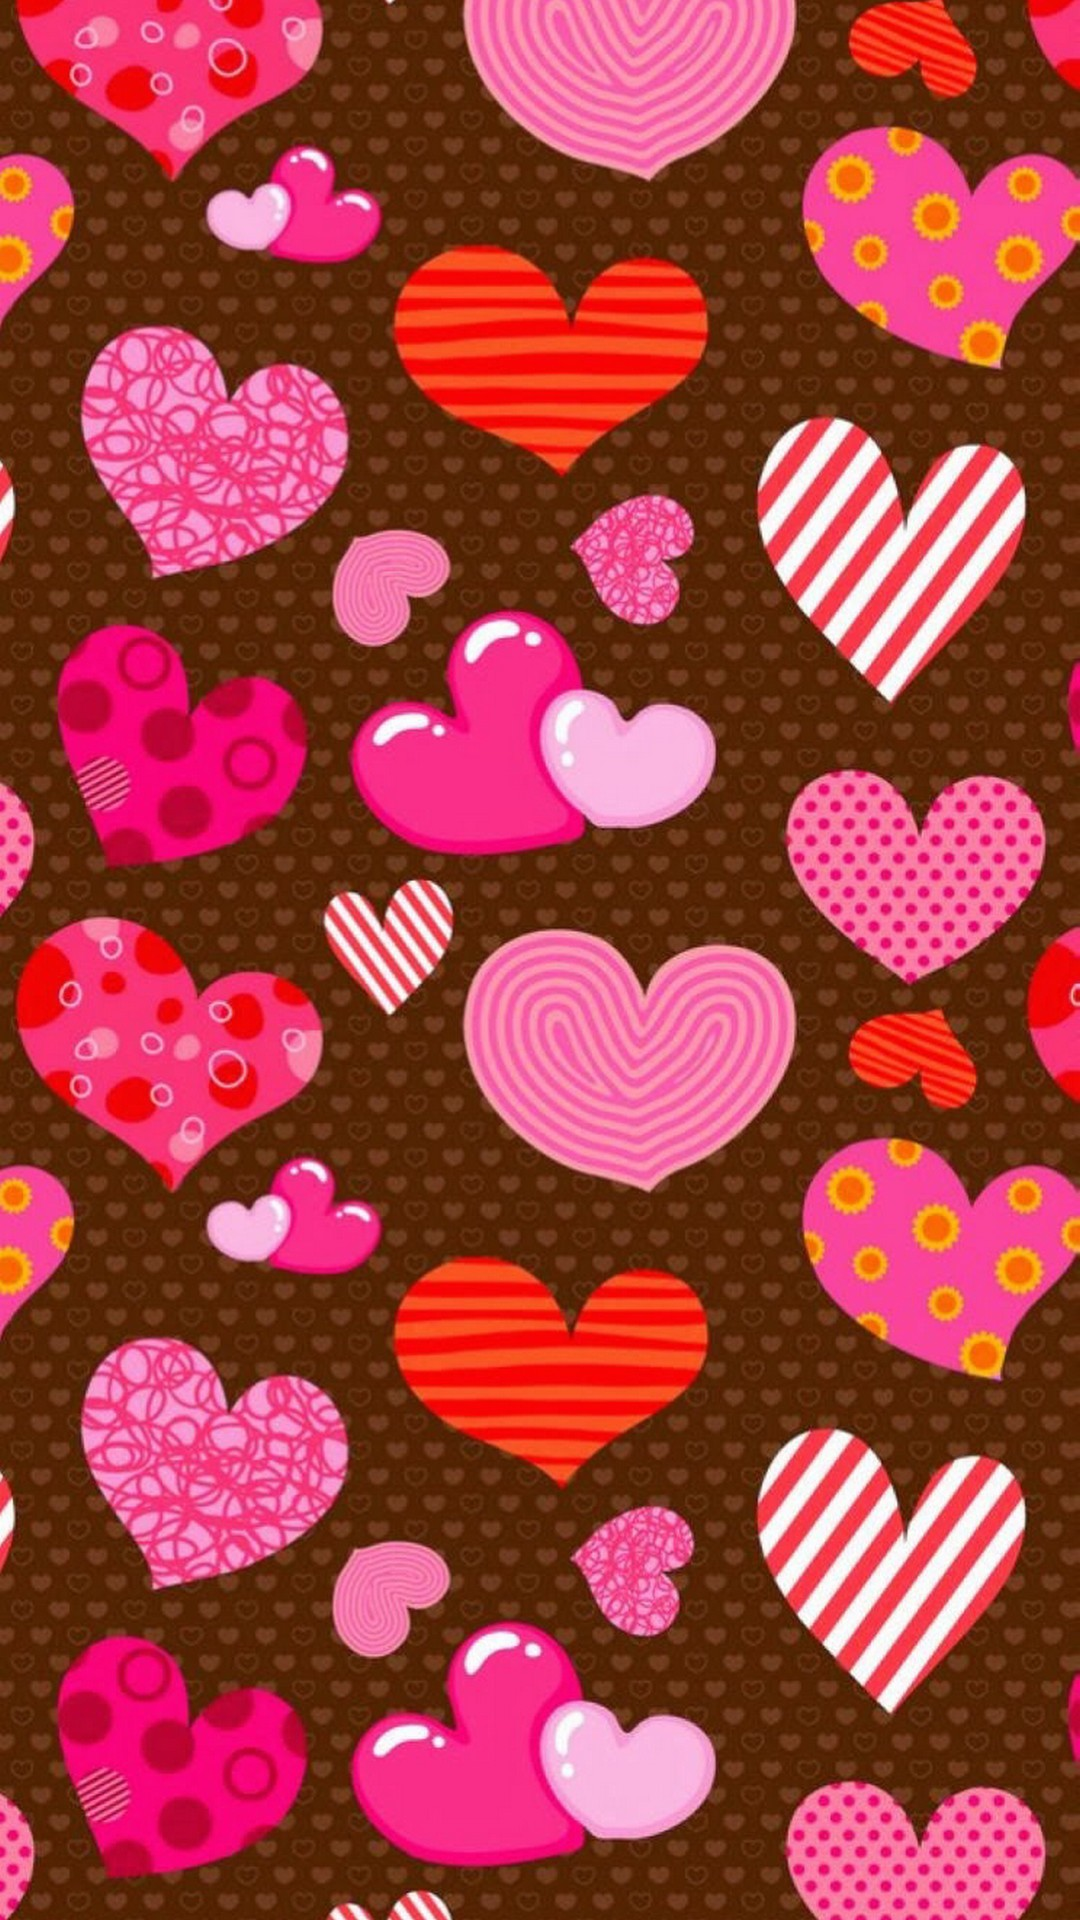 Valentine Wallpaper For Iphone 74 Images